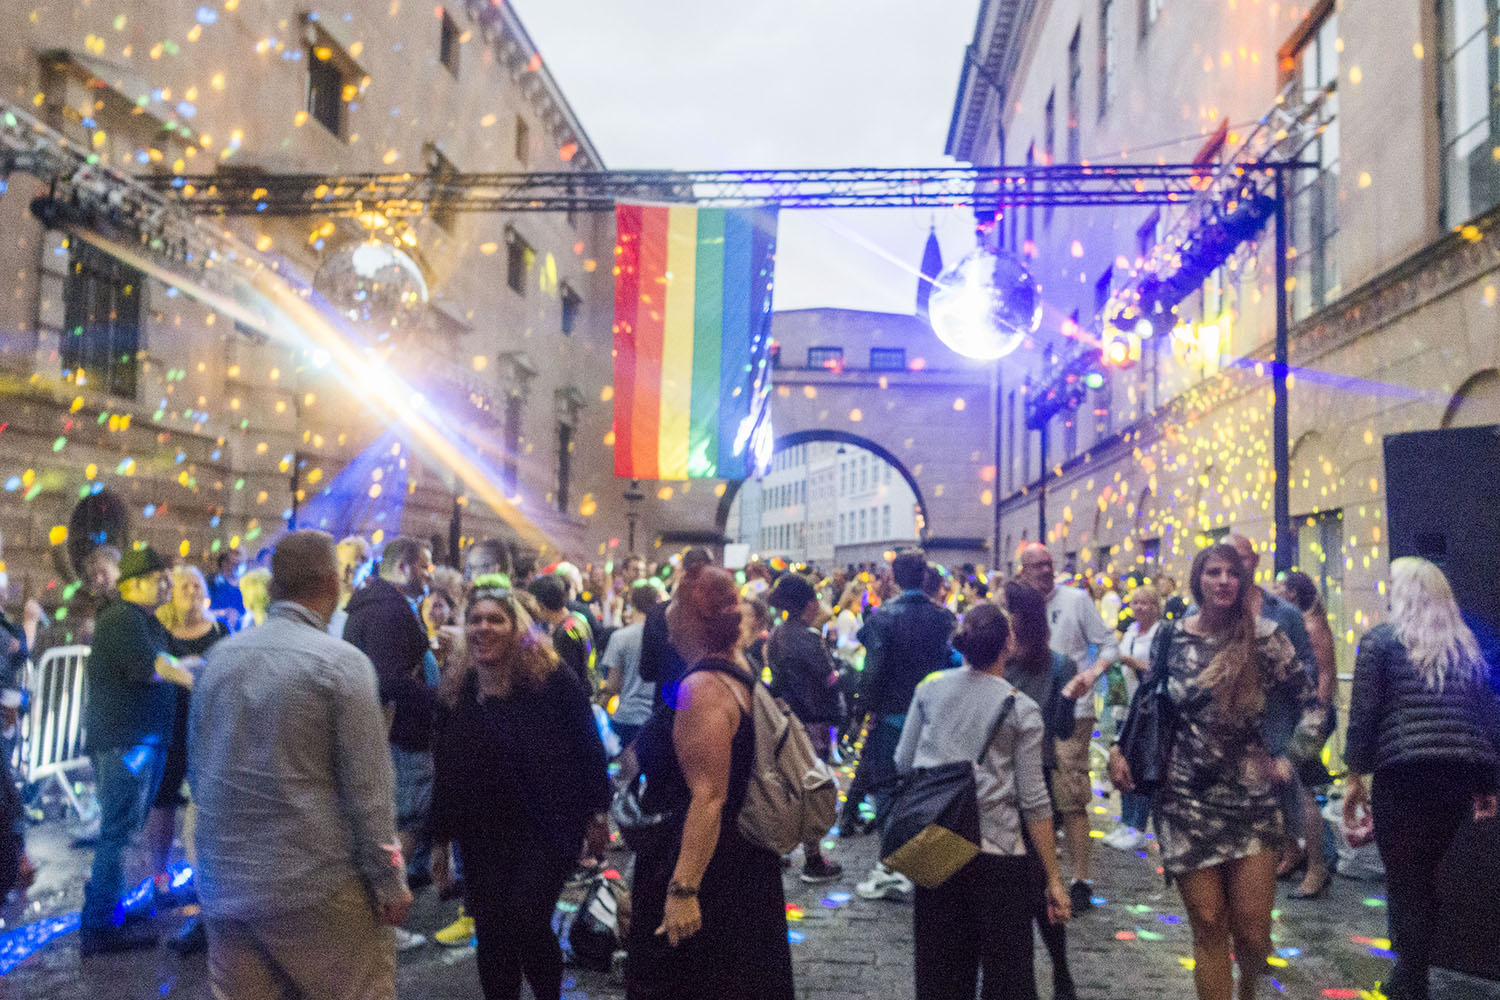 CphPride2016_HelenaLundquist_blog_49